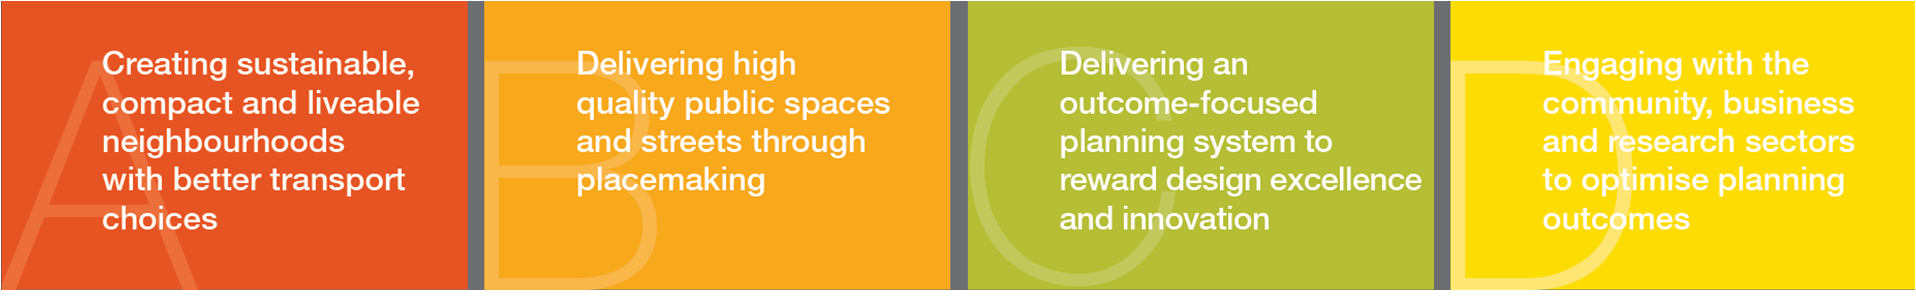 Statement of Planning Intent image of four priorities